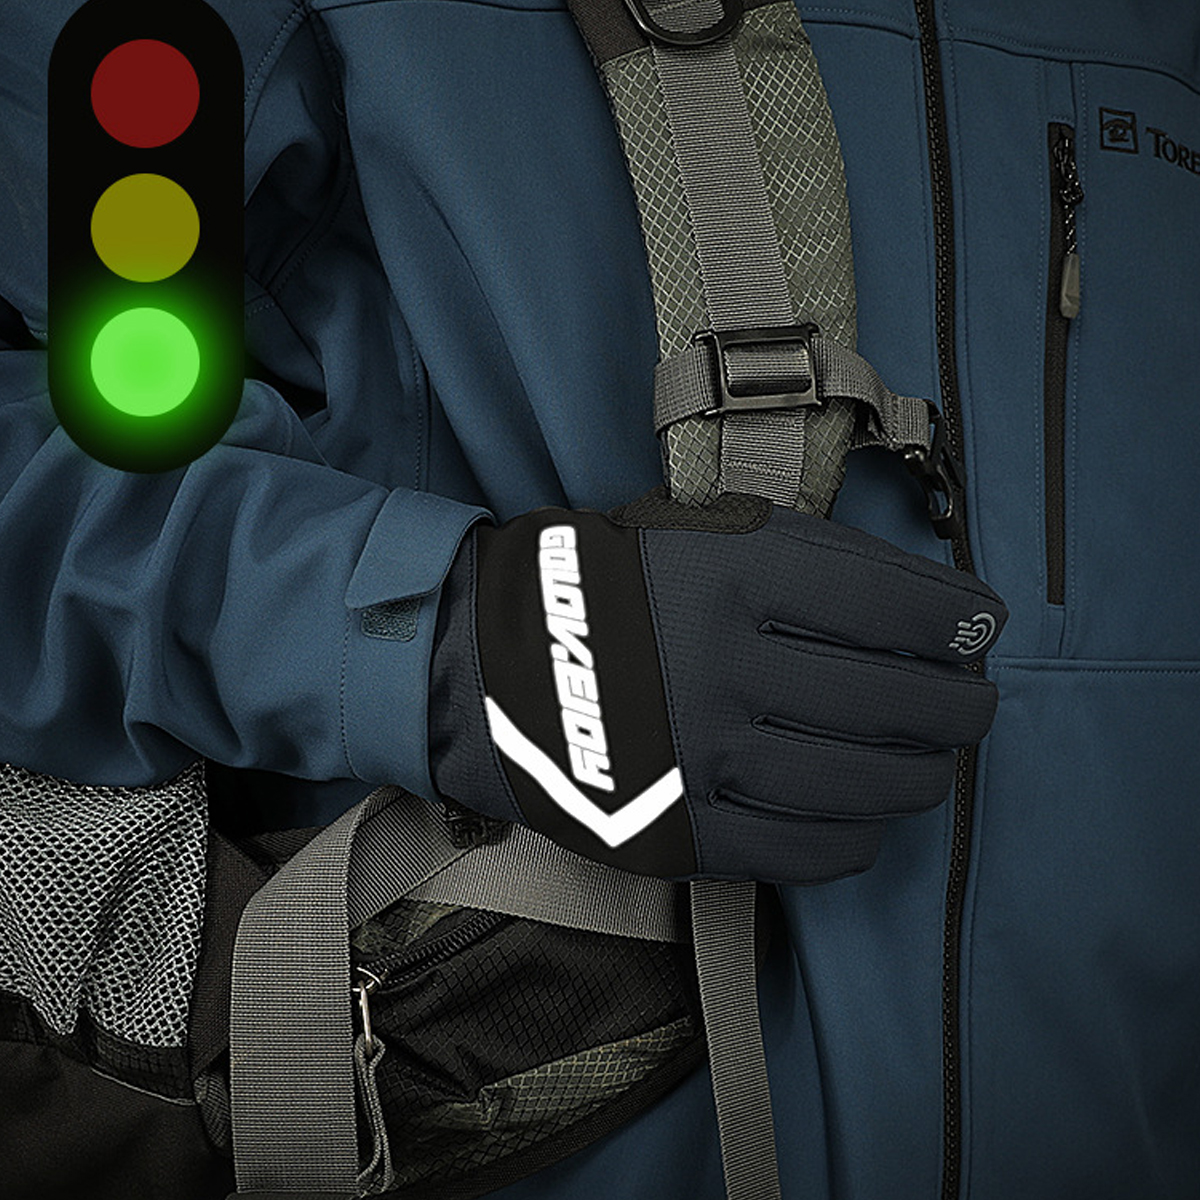 Winter Warm Thermal Touch Screen Gloves Ski Snow Snowboard Cycling Waterproof Touchscreen